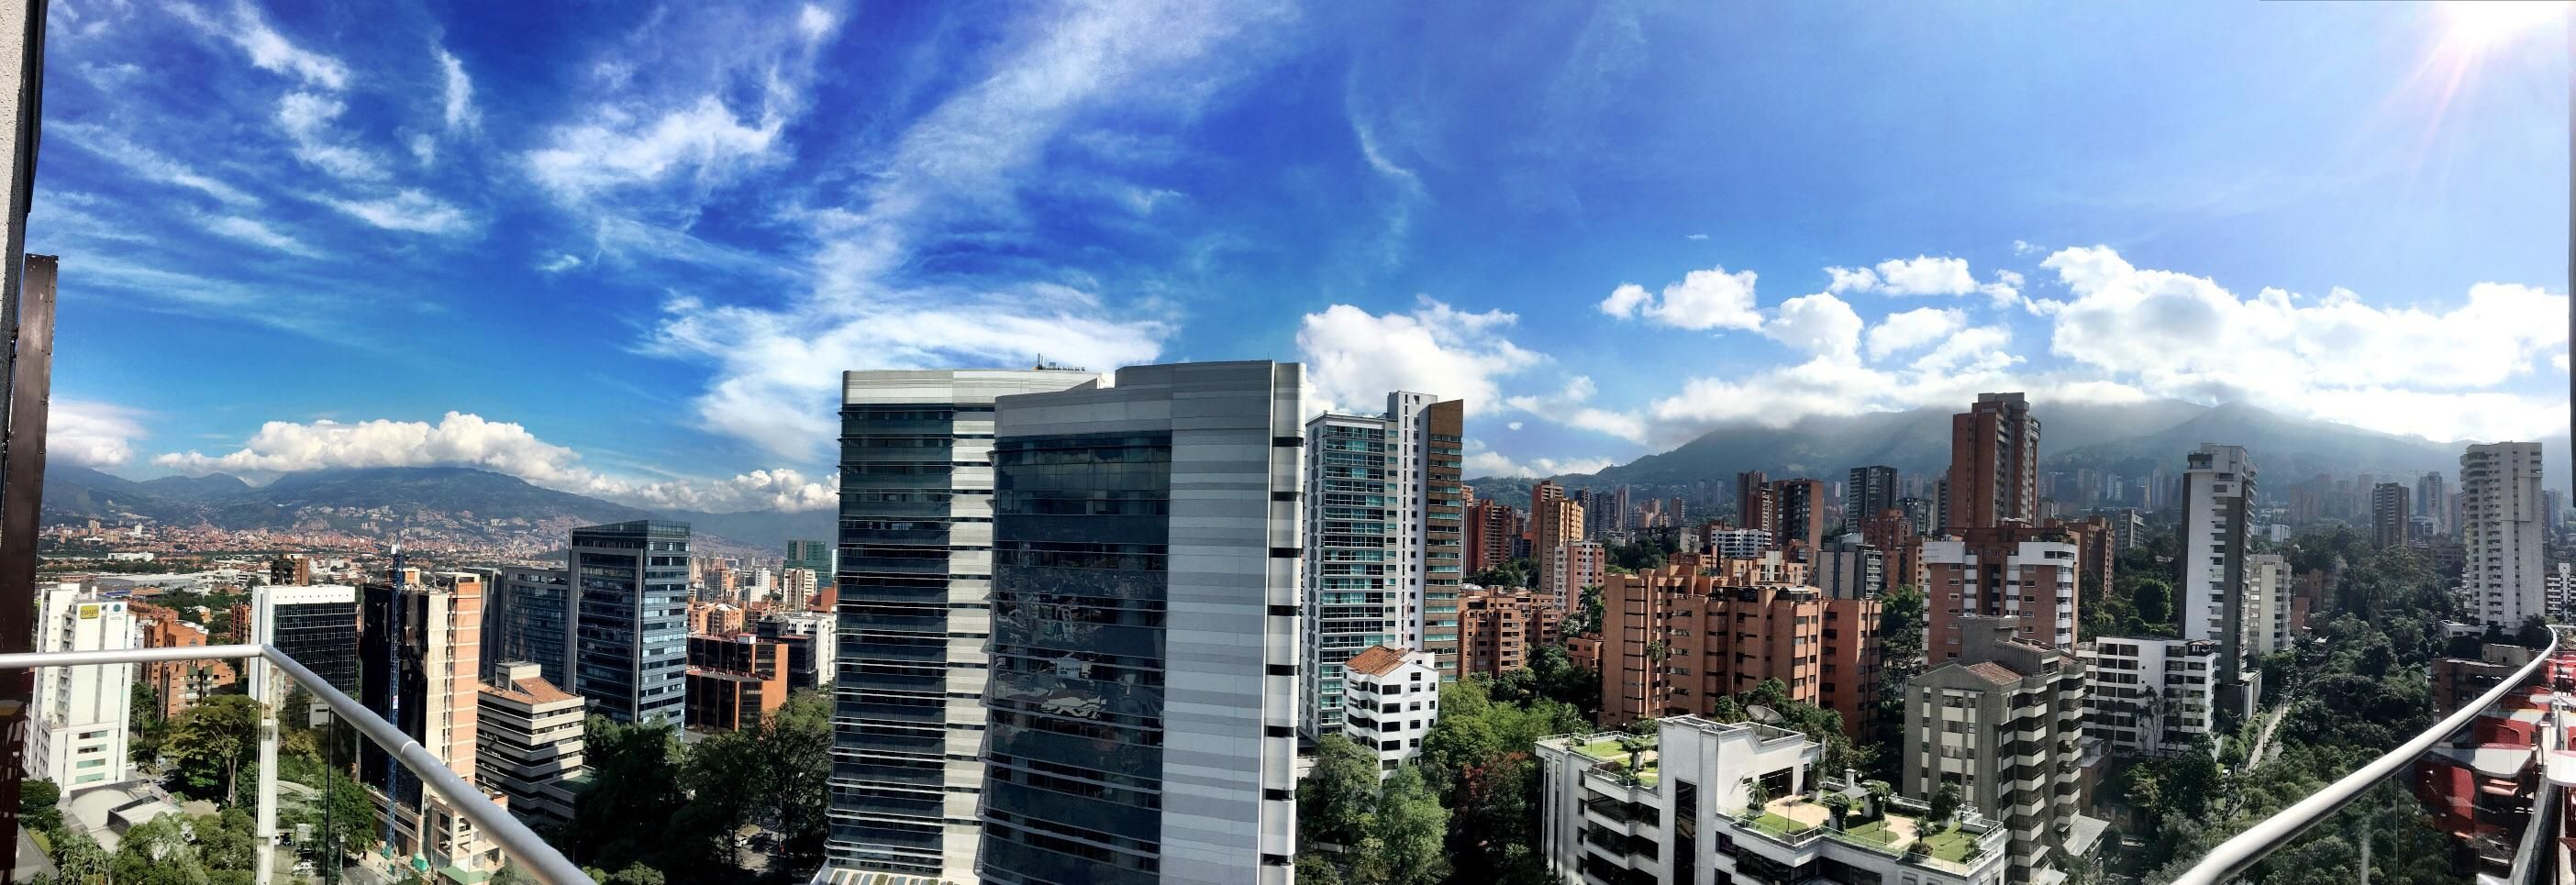 Panorama of Medellin Colombia from the rooftop of a hotel. #travel #photography #nature #photo #vacation #photooftheday #adventure #landscape